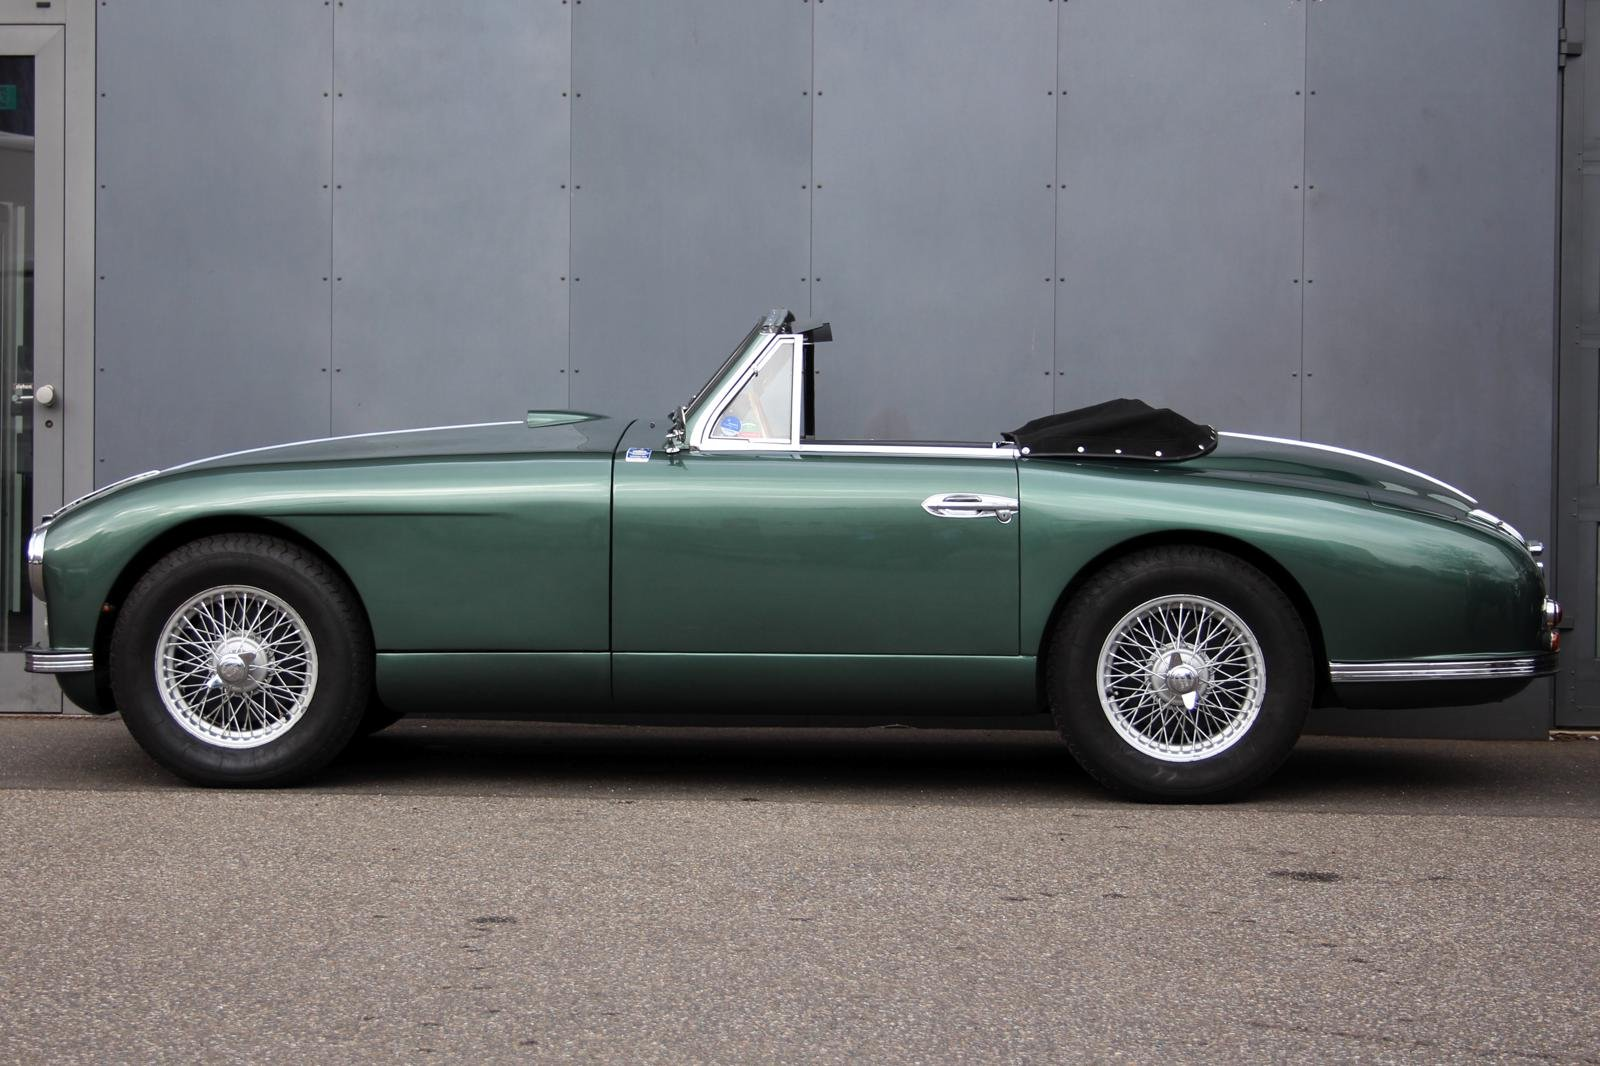 1953 Aston Martin DB2 DHC Vantage LHD For Sale (picture 5 of 6)